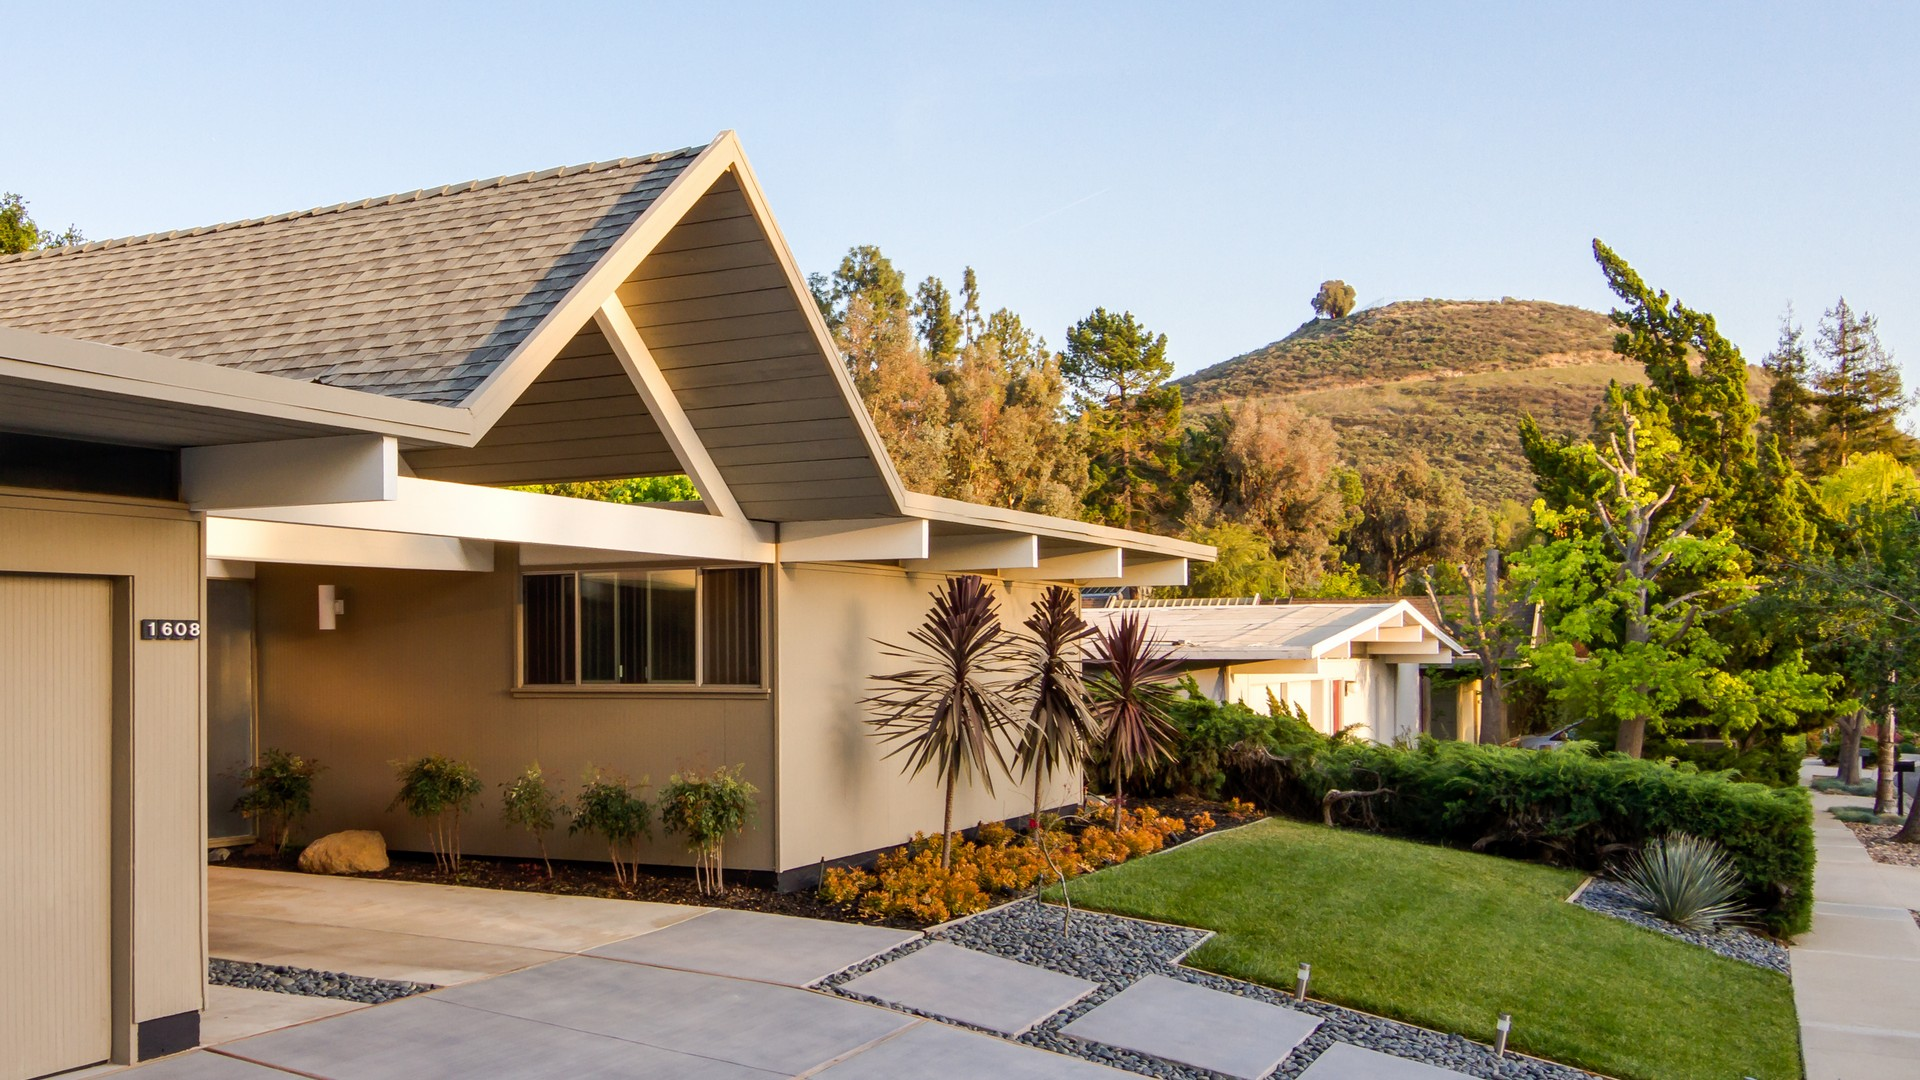 Thousand Oaks Eichler Homes Eichlers For Sale In